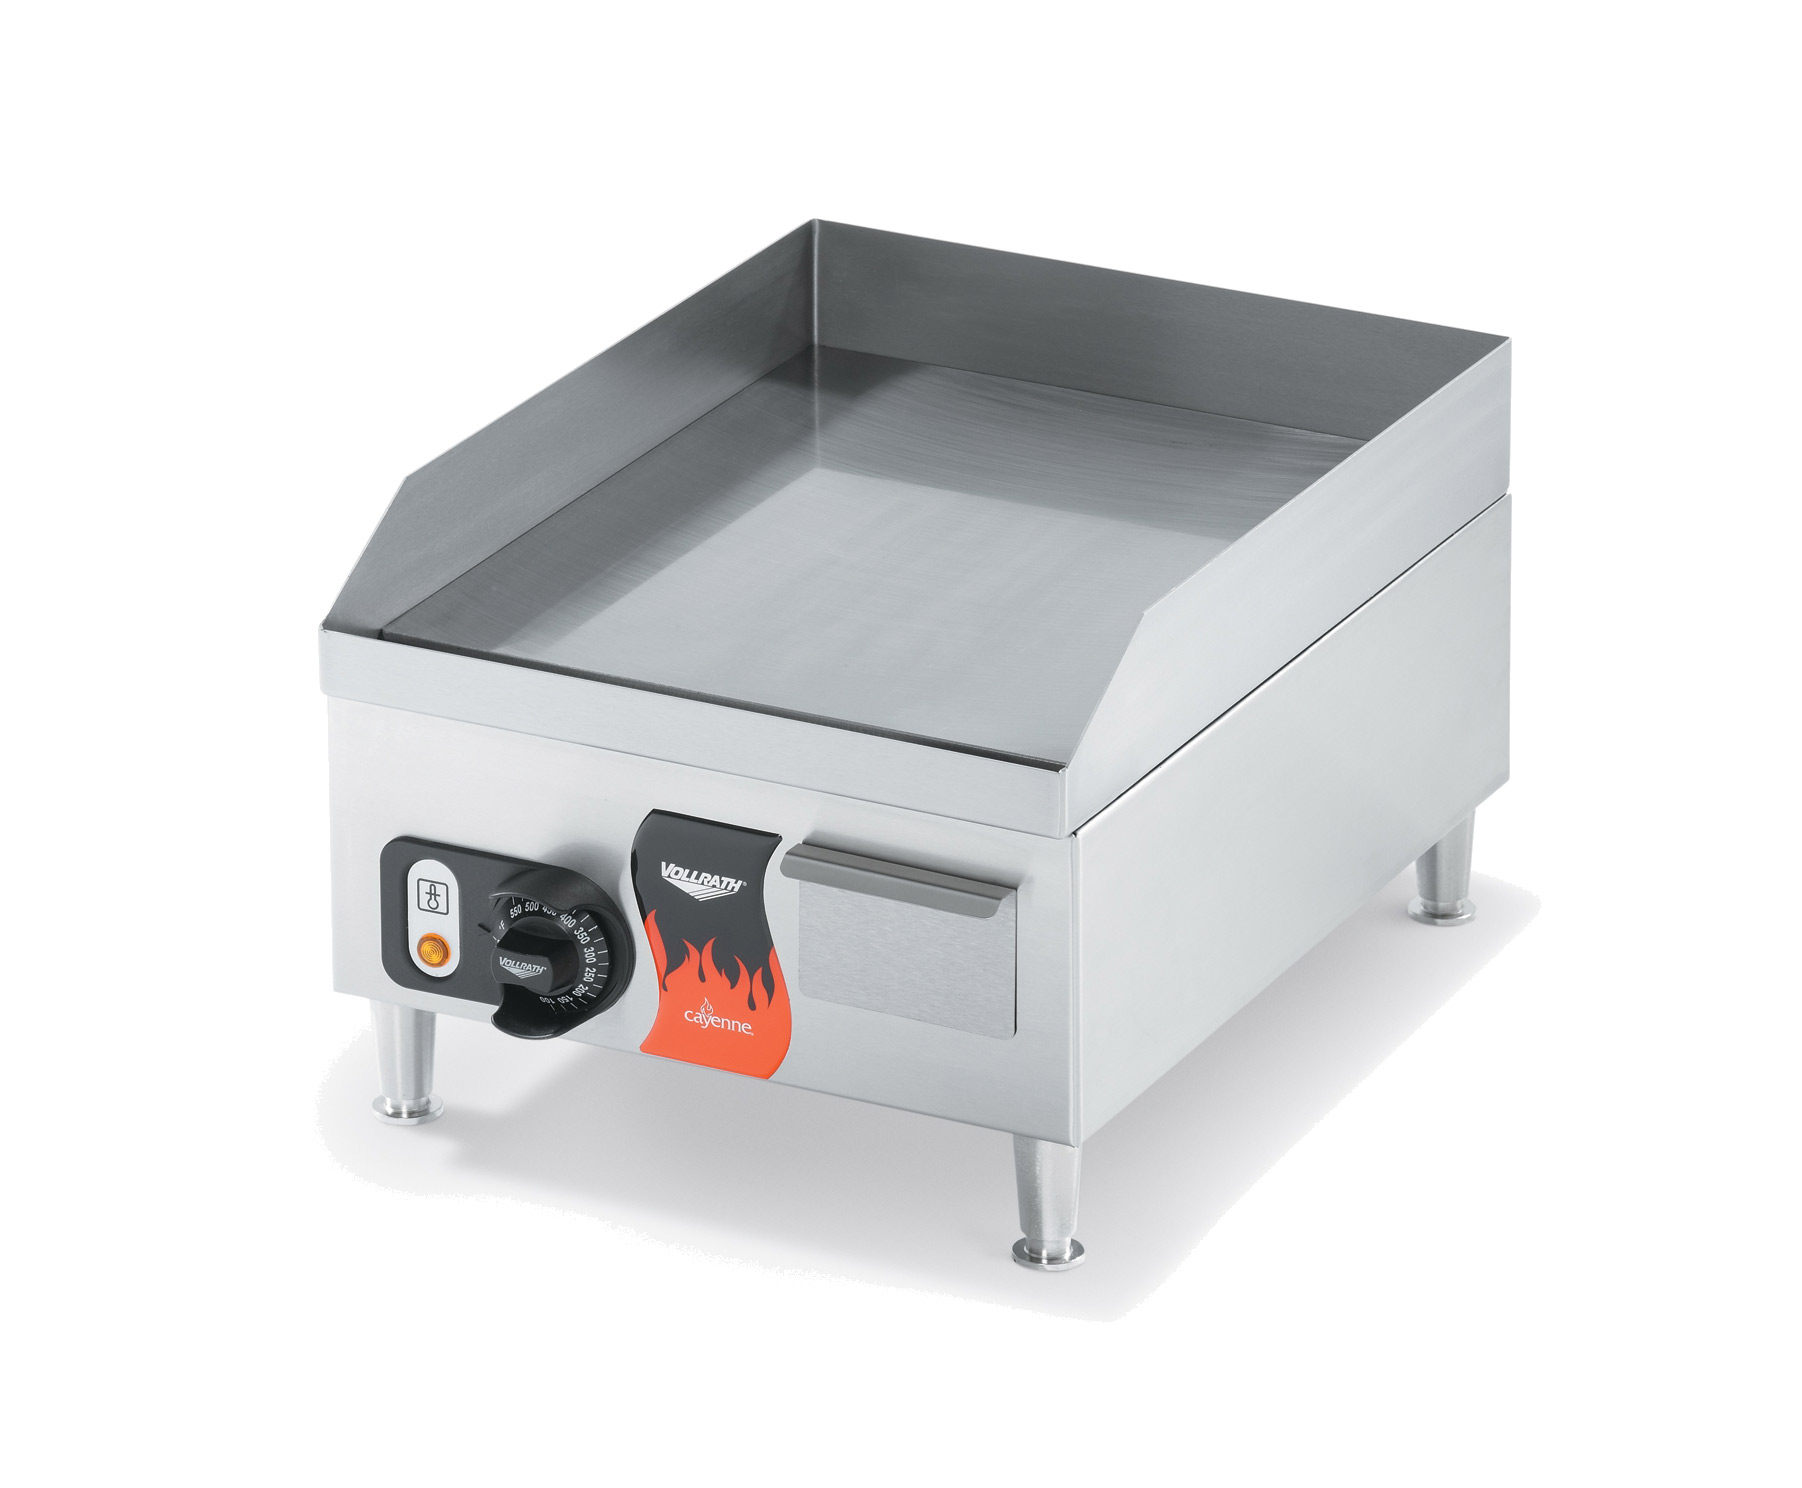 Vollrath 40715 griddle, electric, countertop